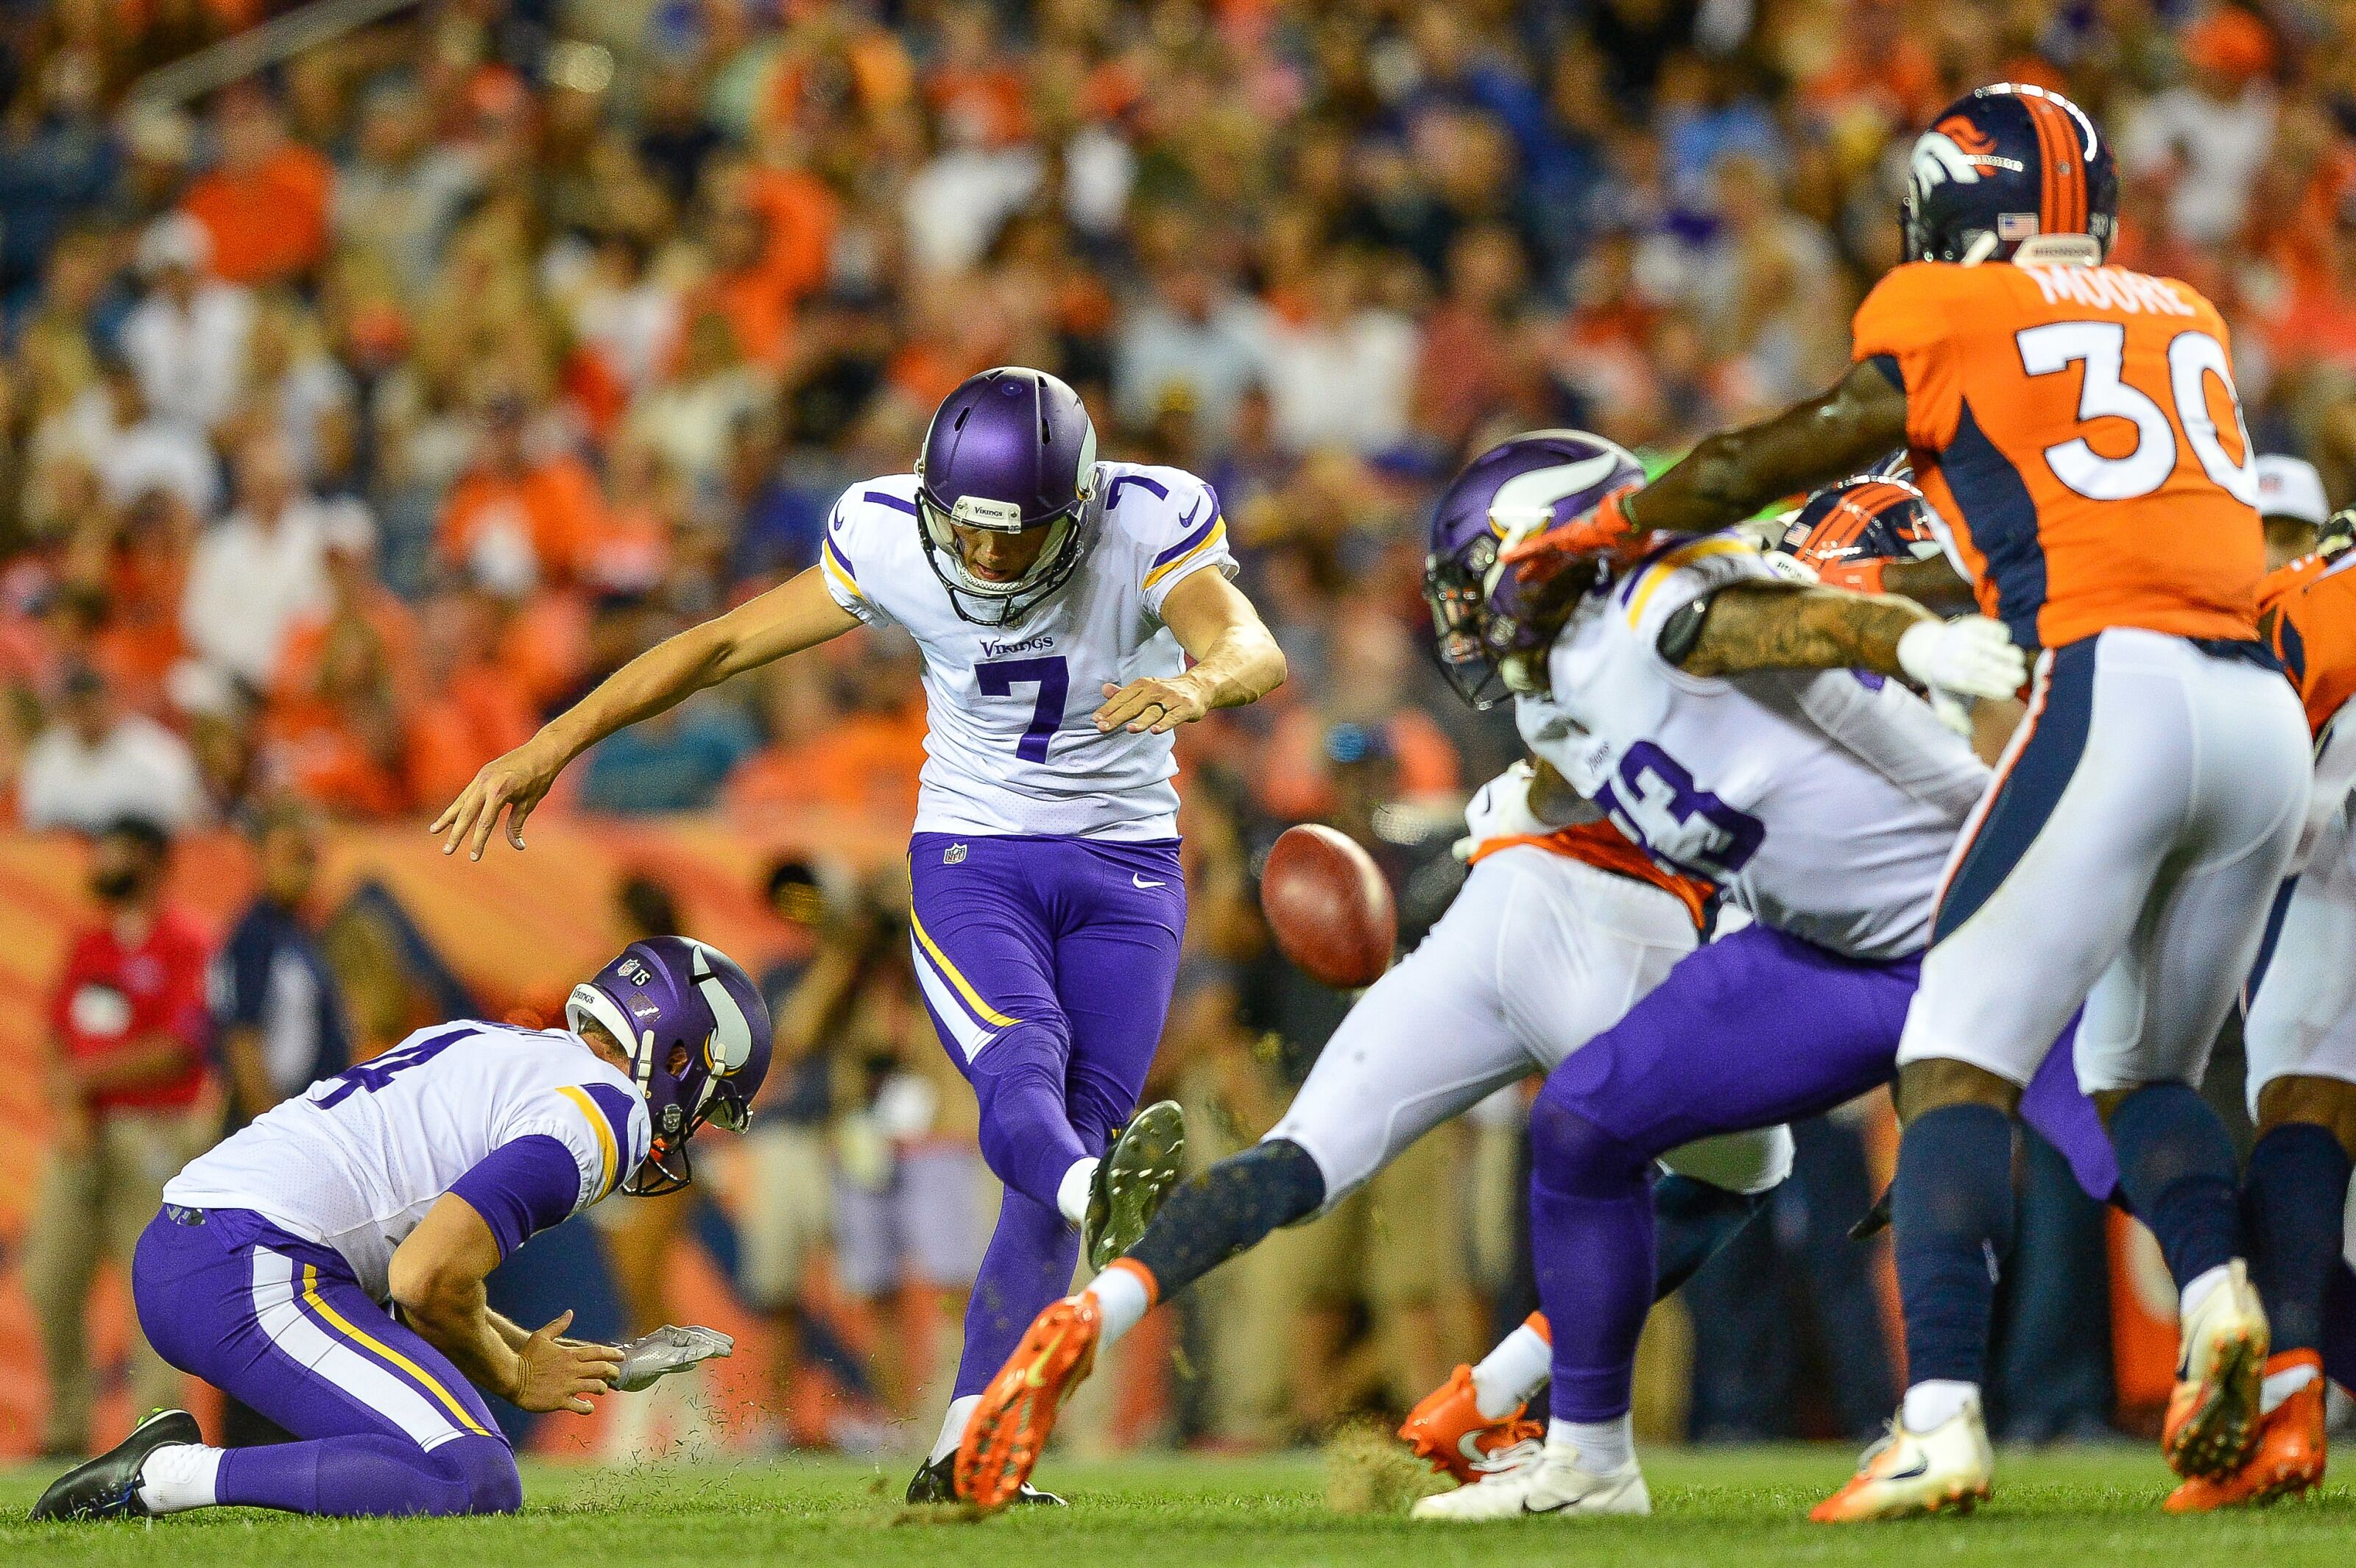 Minnesota Vikings kicker Daniel Carlson still in awe over being in the NFL